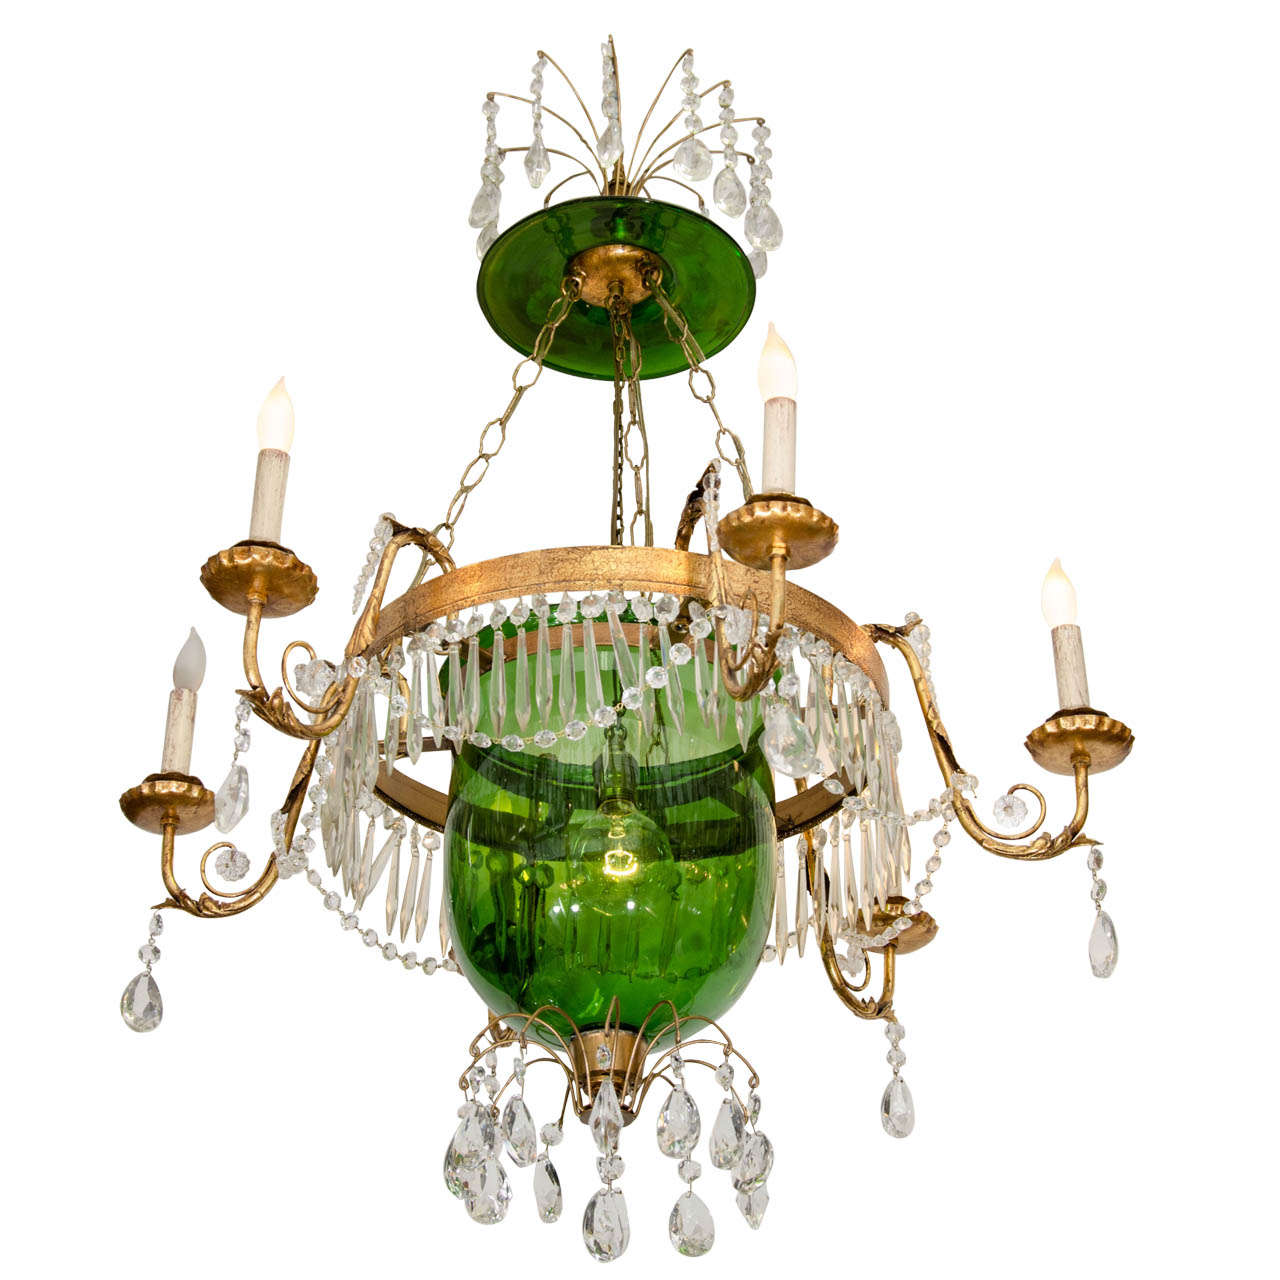 A Vintage Green Glass Bell Jar Chandelier W/Hanging ...